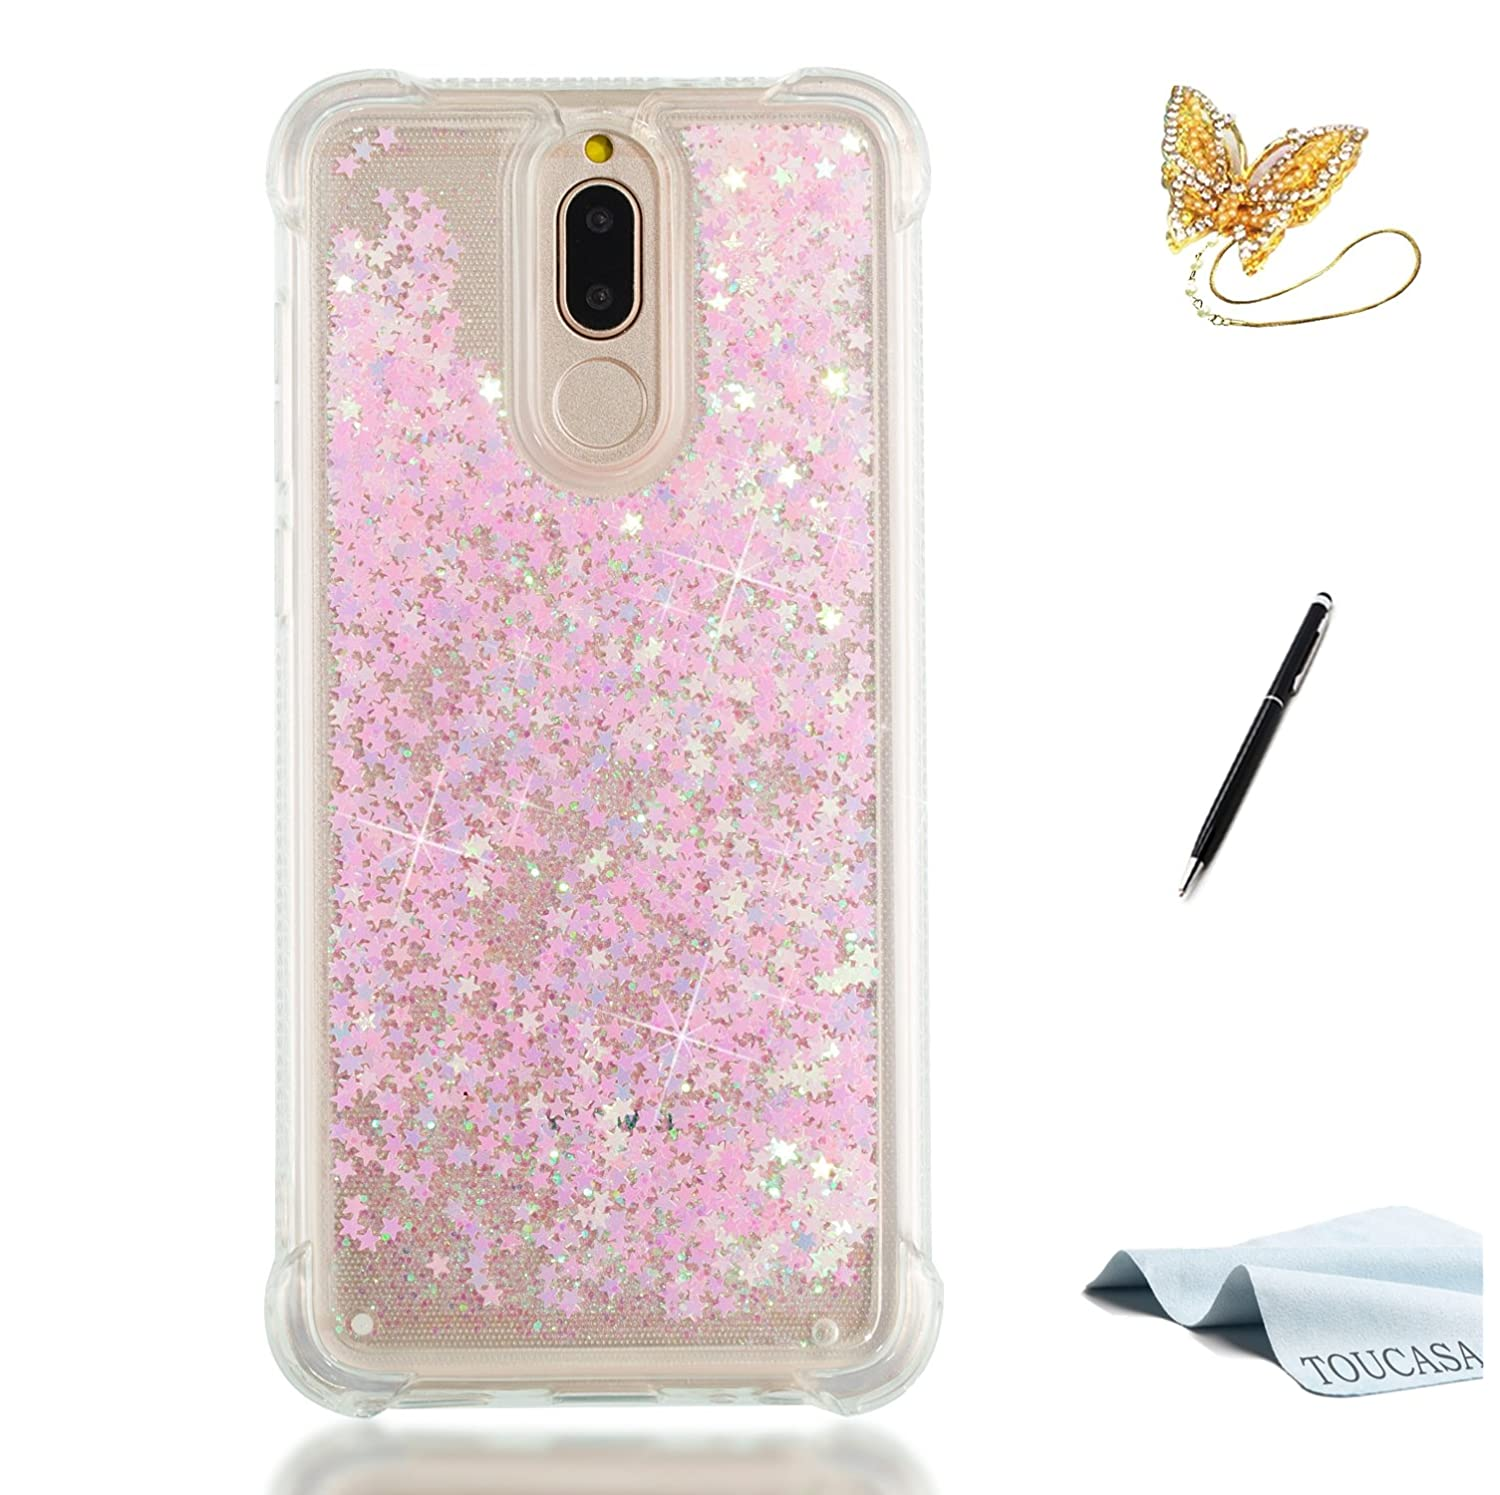 Coque Huawei P8 Lite 2017, Housse Huawei P8 Lite 2017, TOUCASA Anti Choc Silicone Coque, Bling Mince Souple Premium Hybrid Crystal Clear Flex Soft Gel Cover Skin Extra Slim Cristal Clair Gel TPU Neuf Style Brillant Bling Glitter Sparkle Love Star Safe Desi